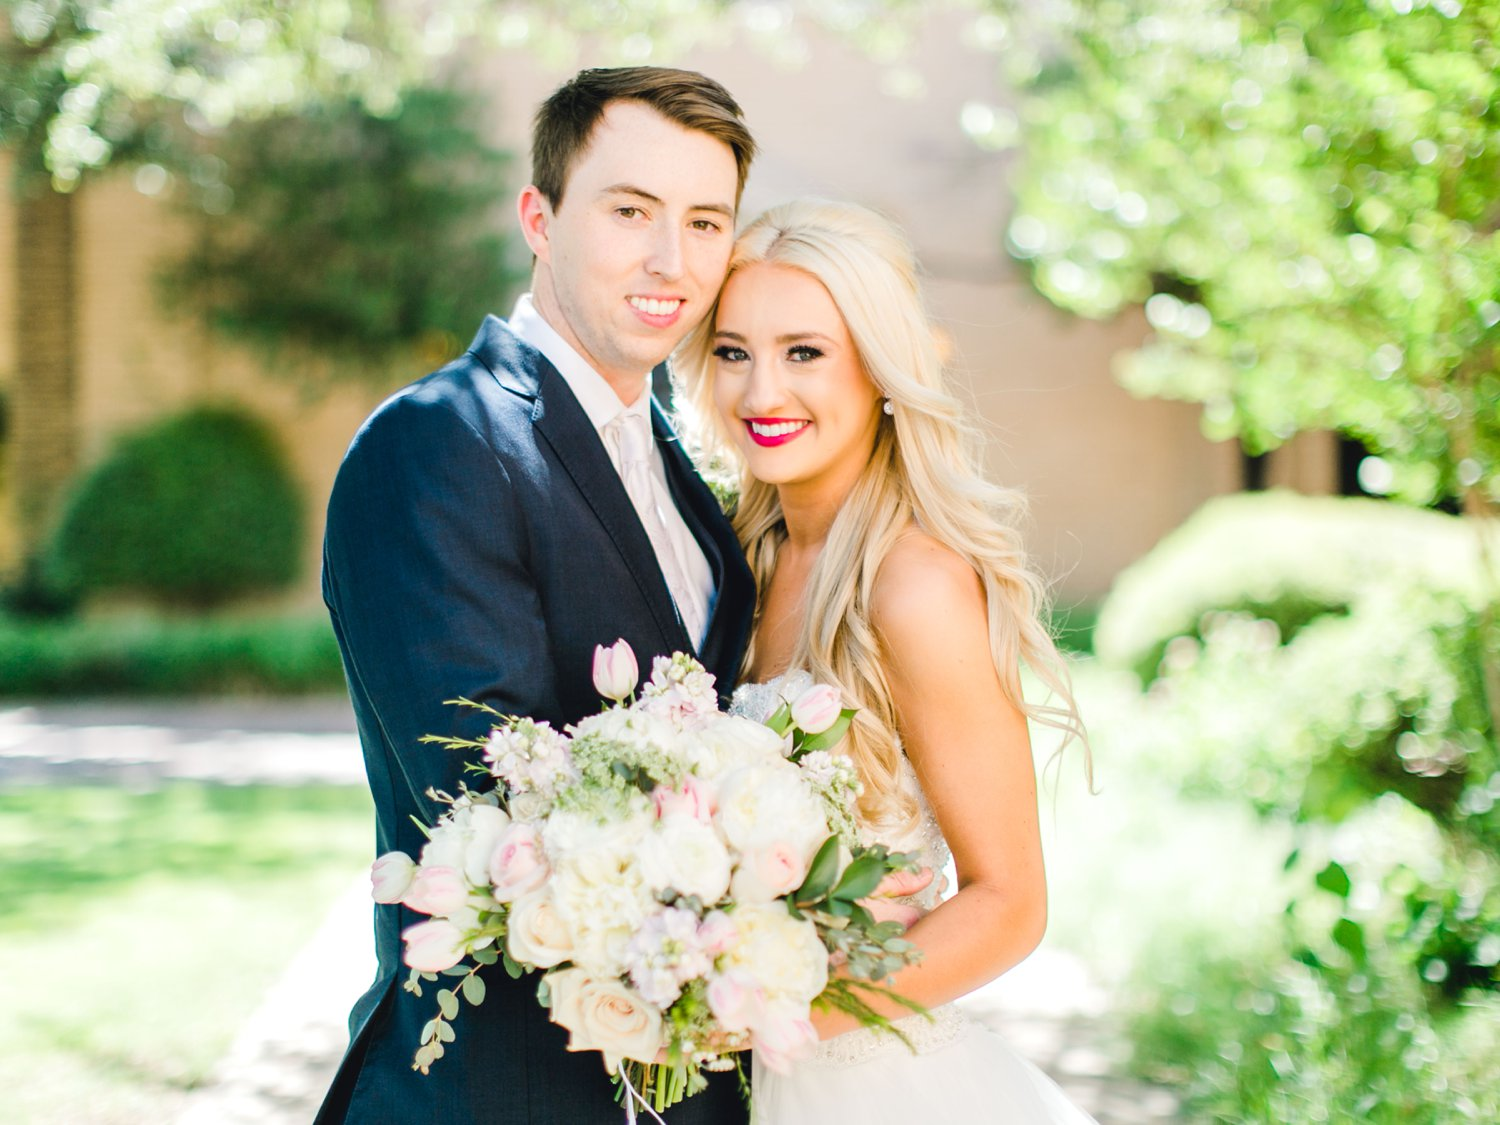 MADI_AND_WILL_STEPHENS_ALLEEJ_LUBBOCK_PHOTOGRAPHER_TEXAS+TECH+FRAZIER_ALUMNI0056.jpg